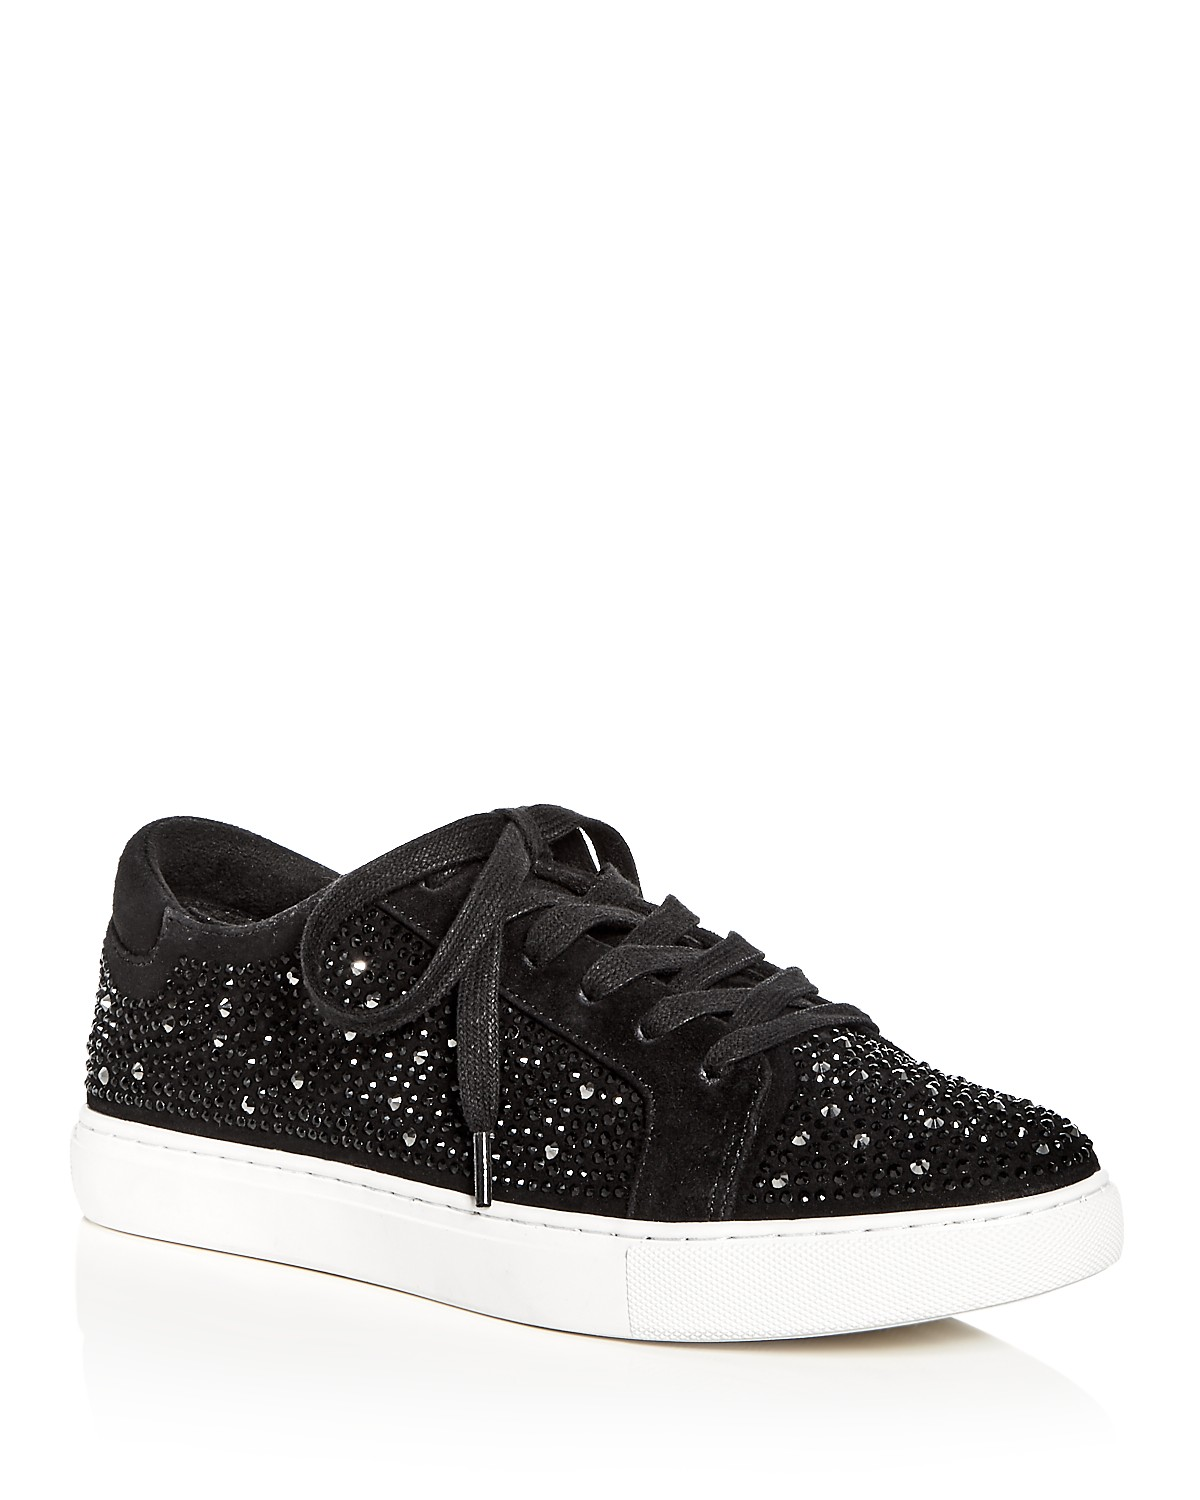 Kenneth Cole Women's Kam Shine Embellished Suede Lace Up Platform Sneakers sZFyw24A0N